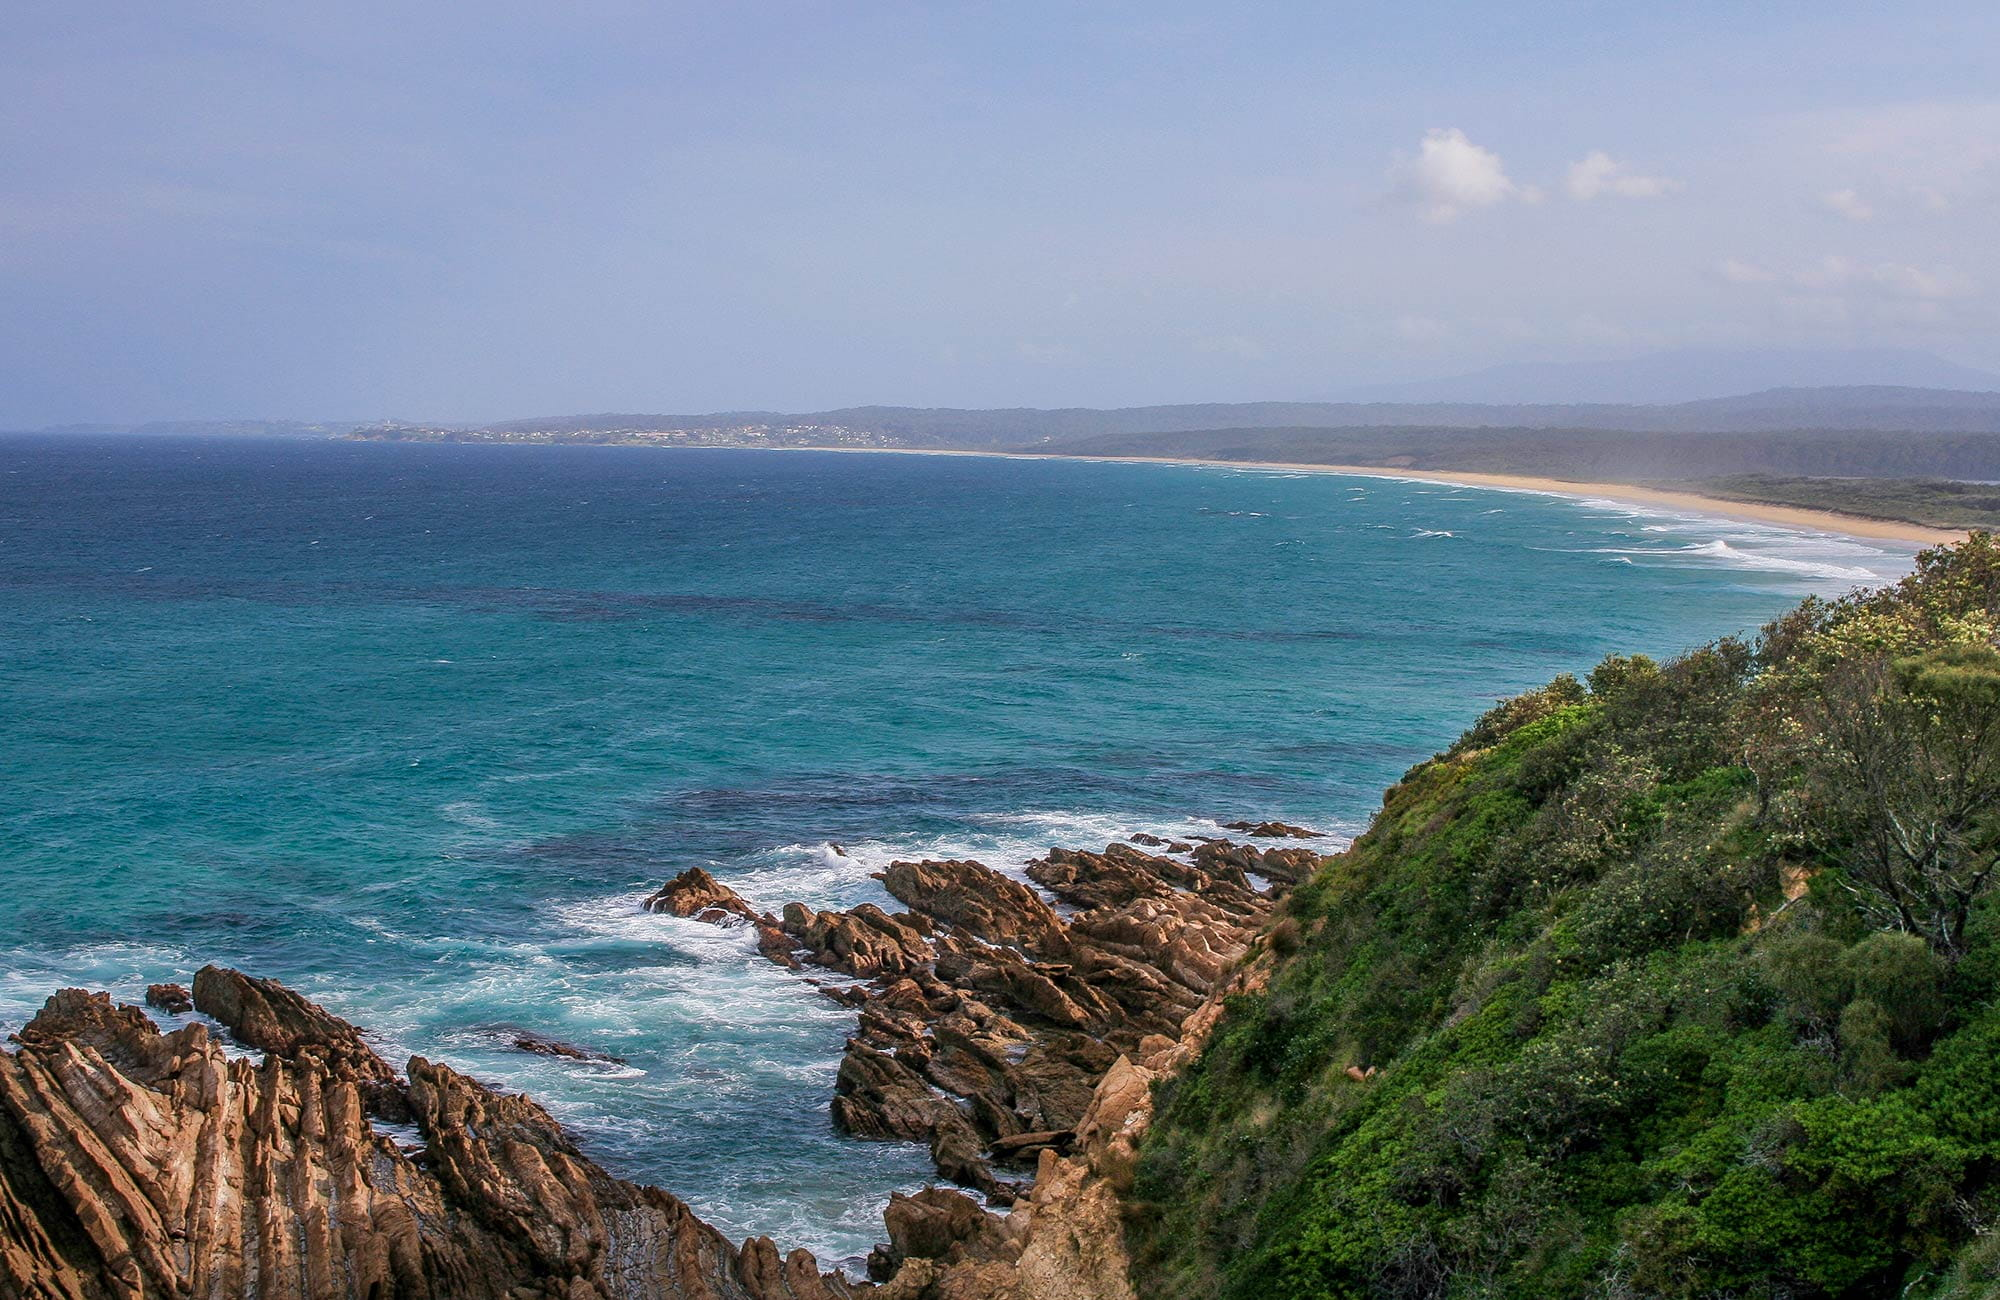 Coastline, Eurobodalla National Park. Photo: Christina Bullivant